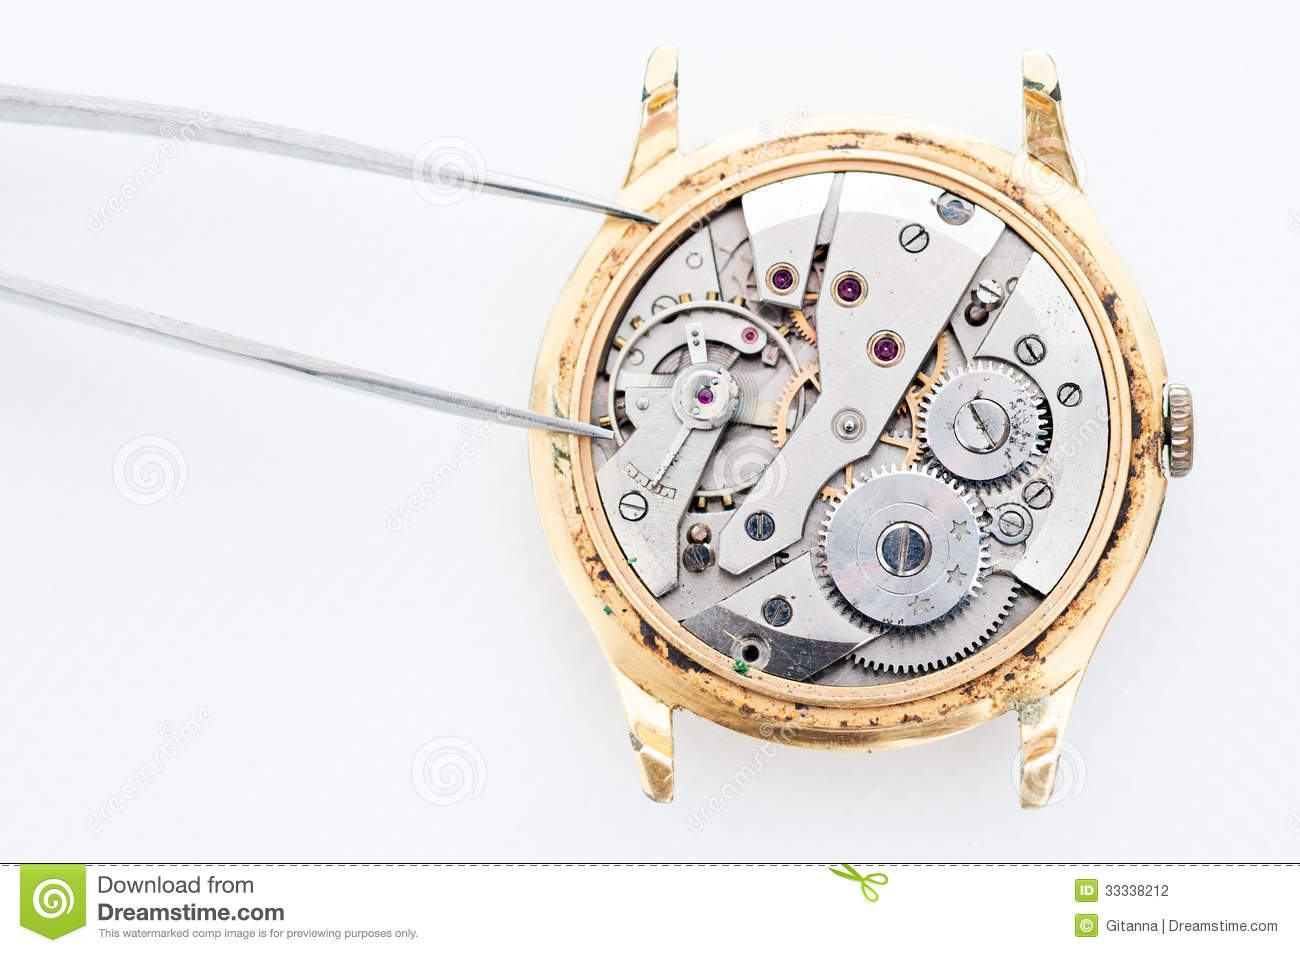 Repair And Restoration Of Watches